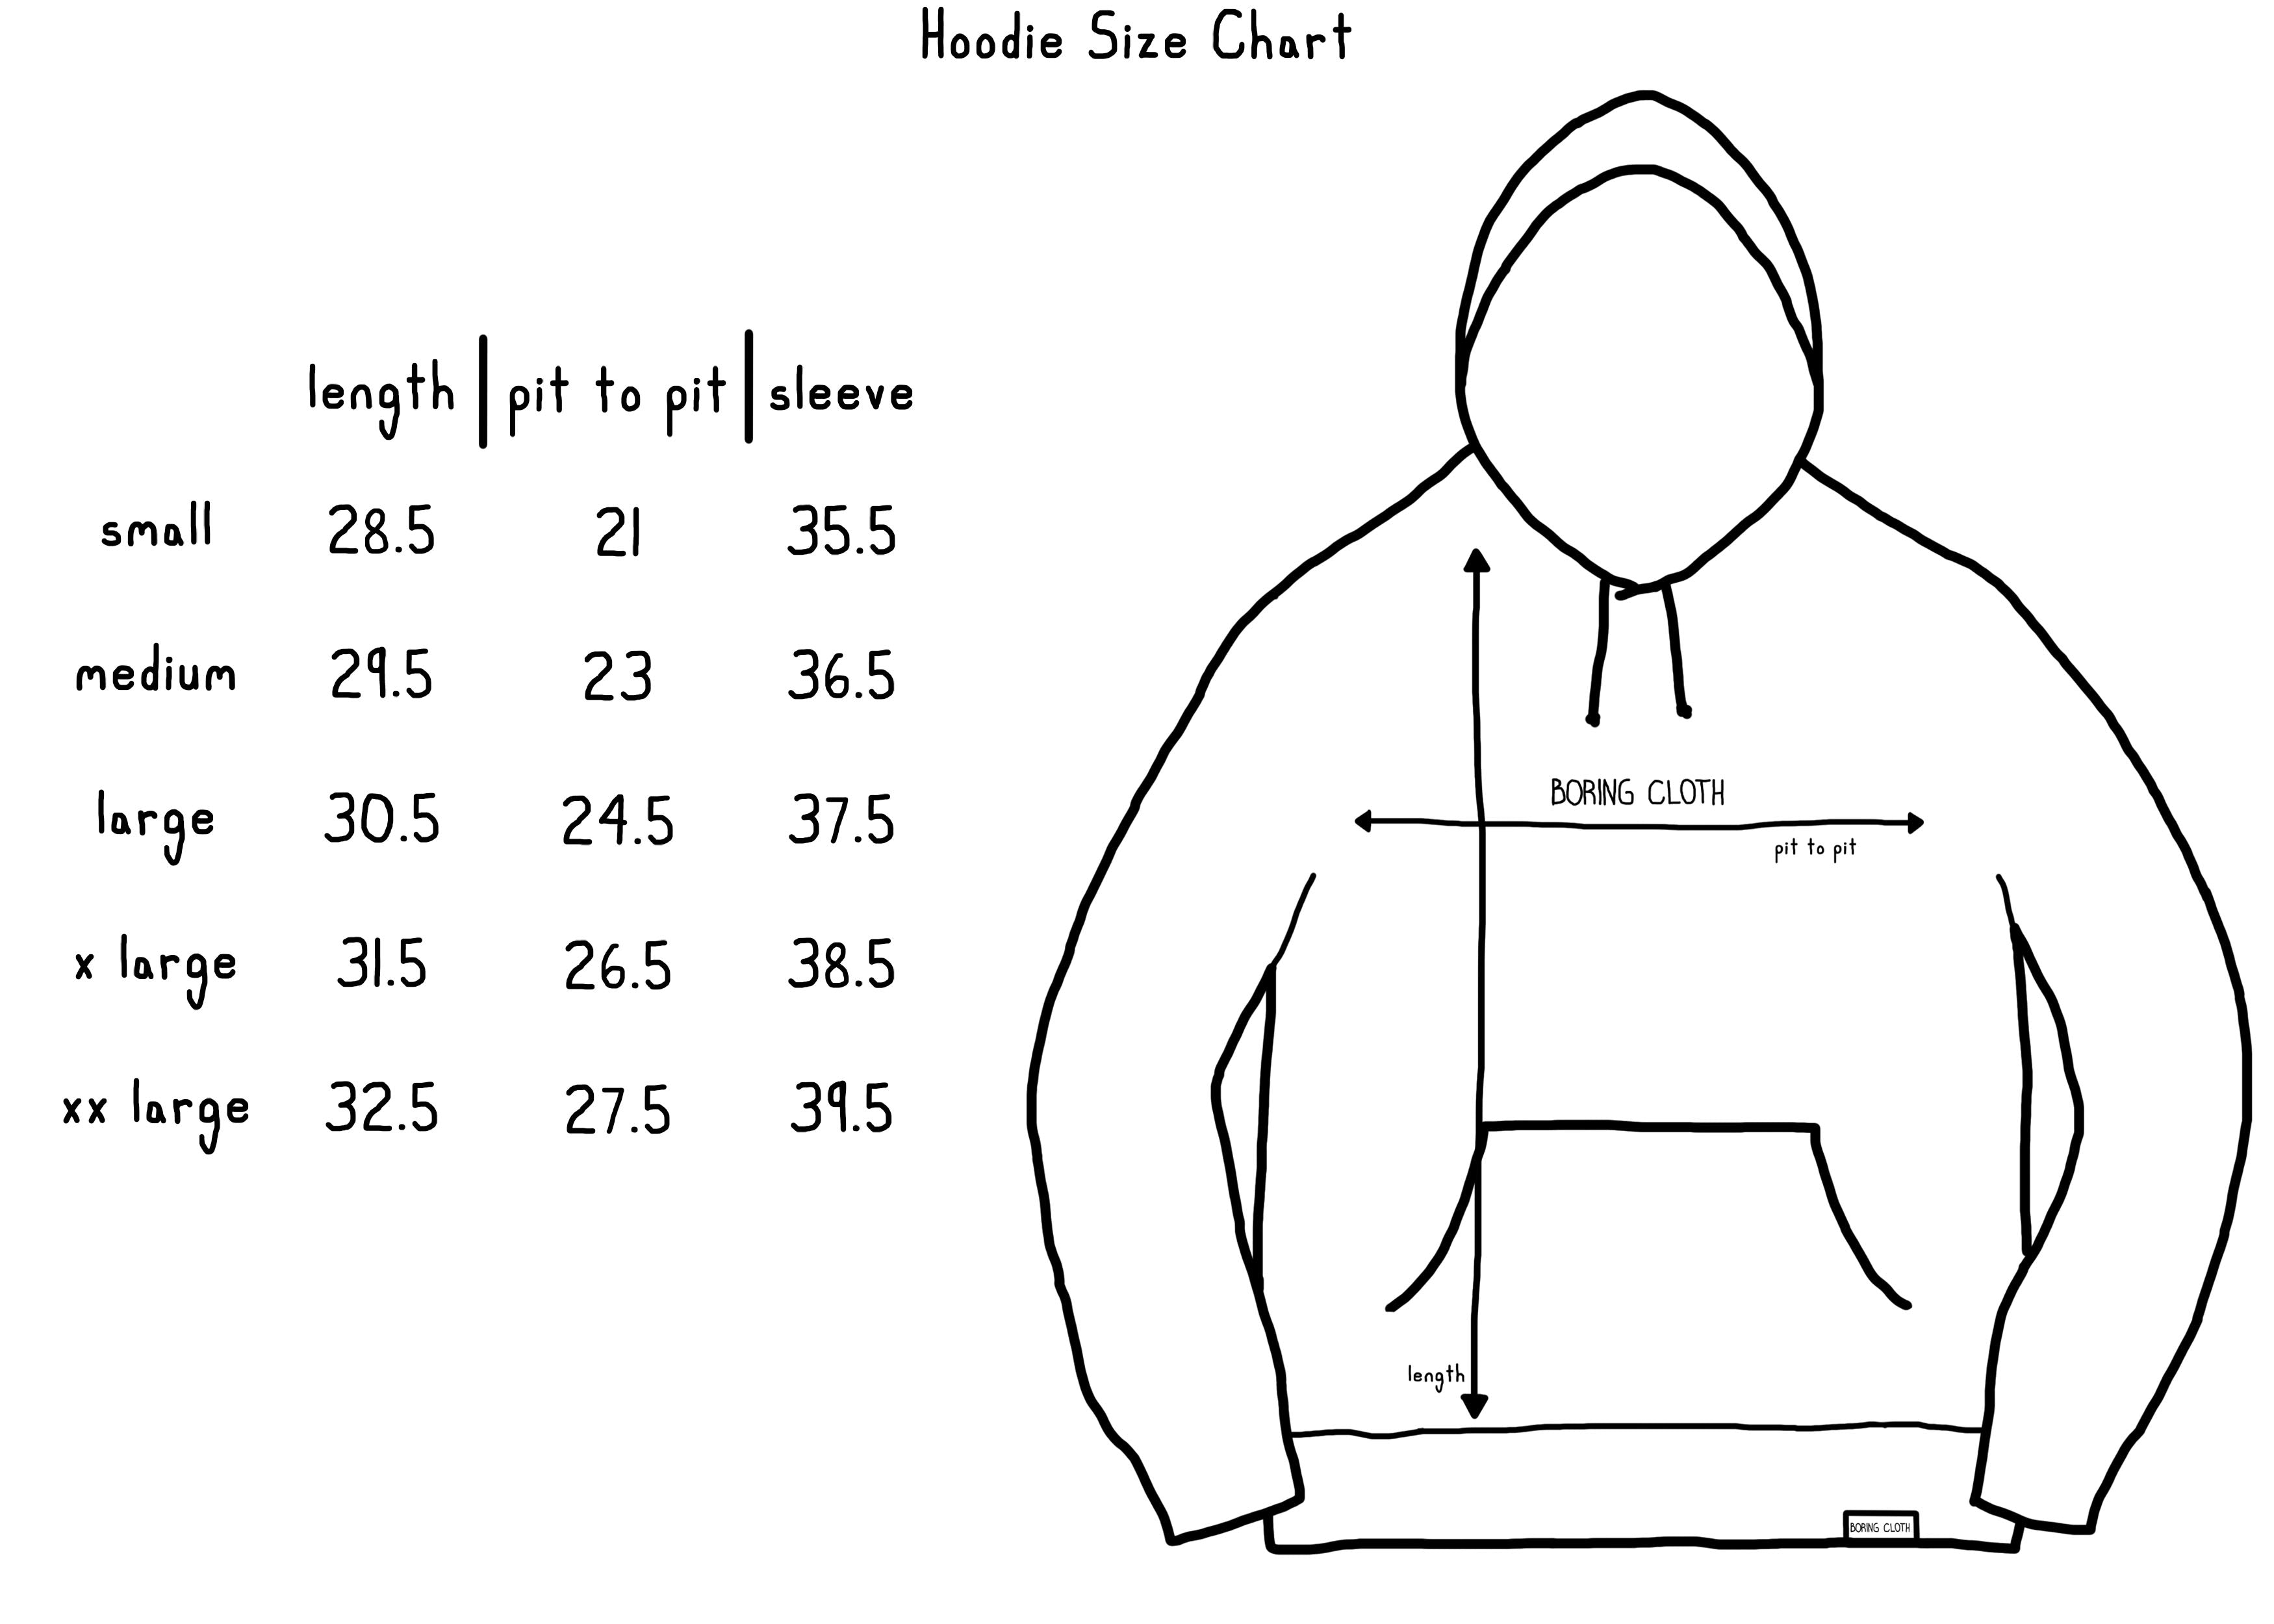 Boring Cloth Hoodie size chart.